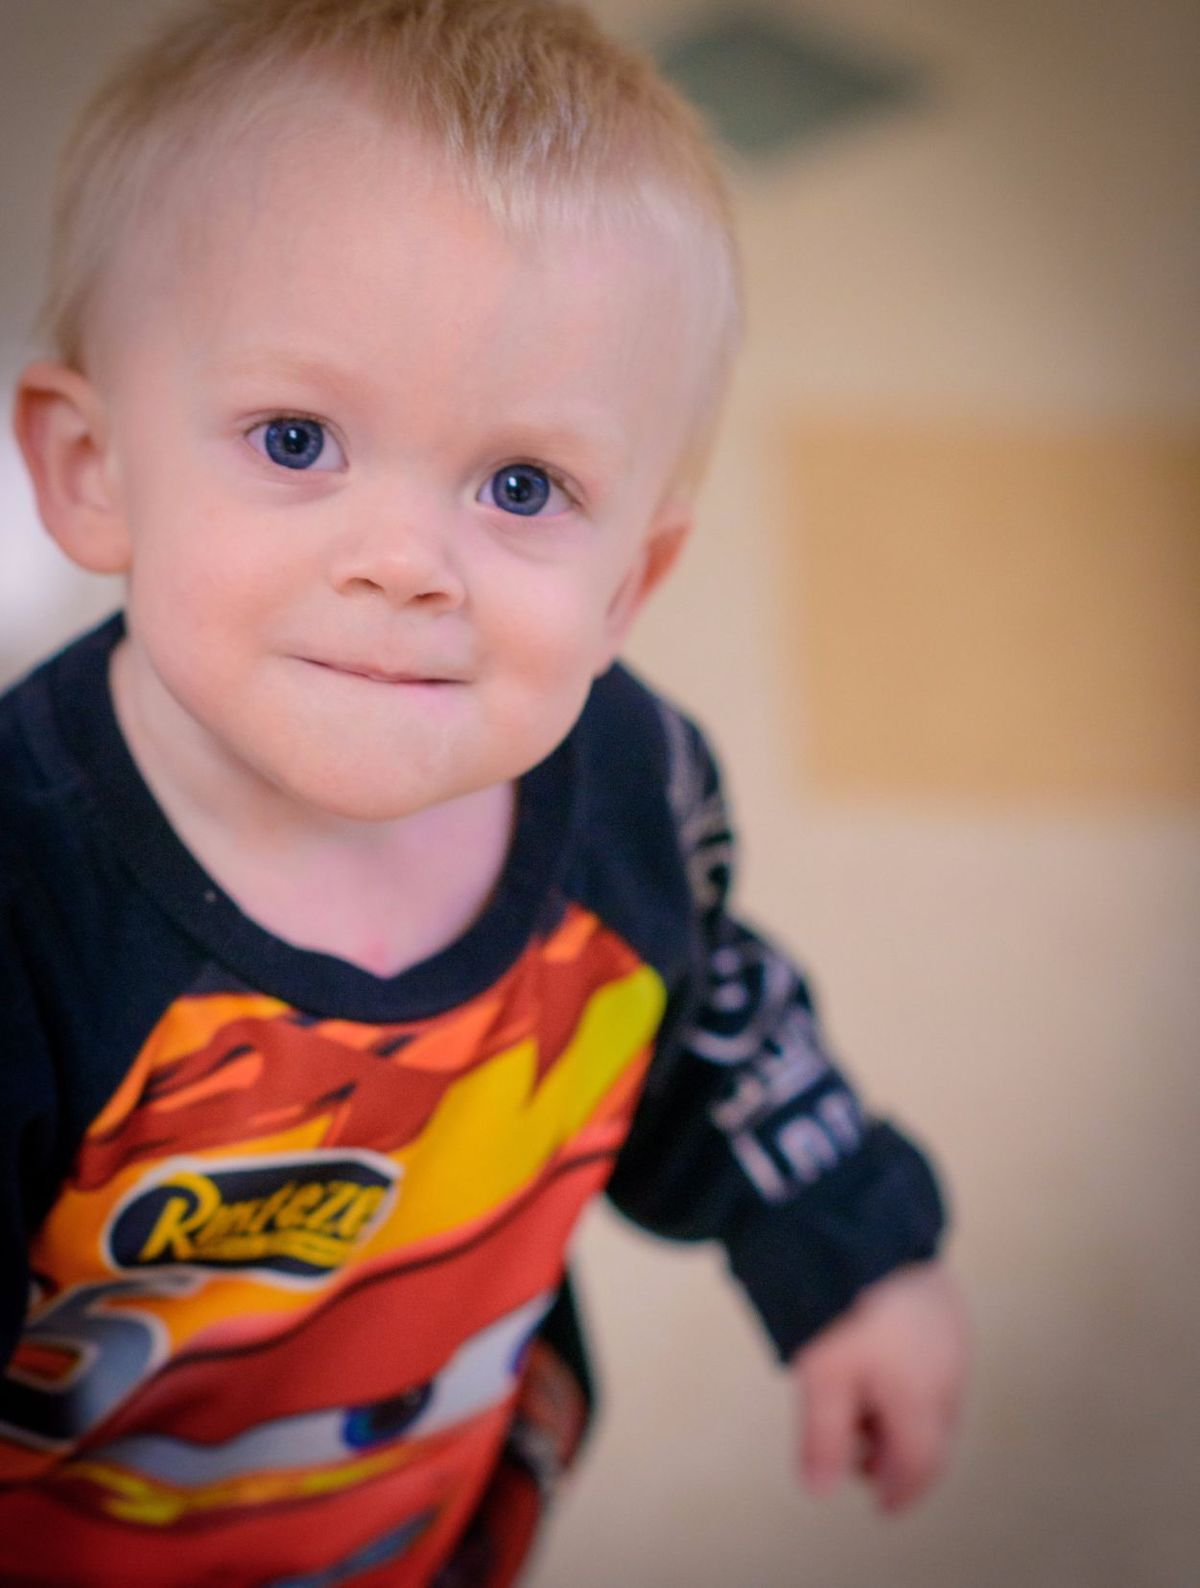 Helping Henry: Big Bend Gets More Pediatric Care